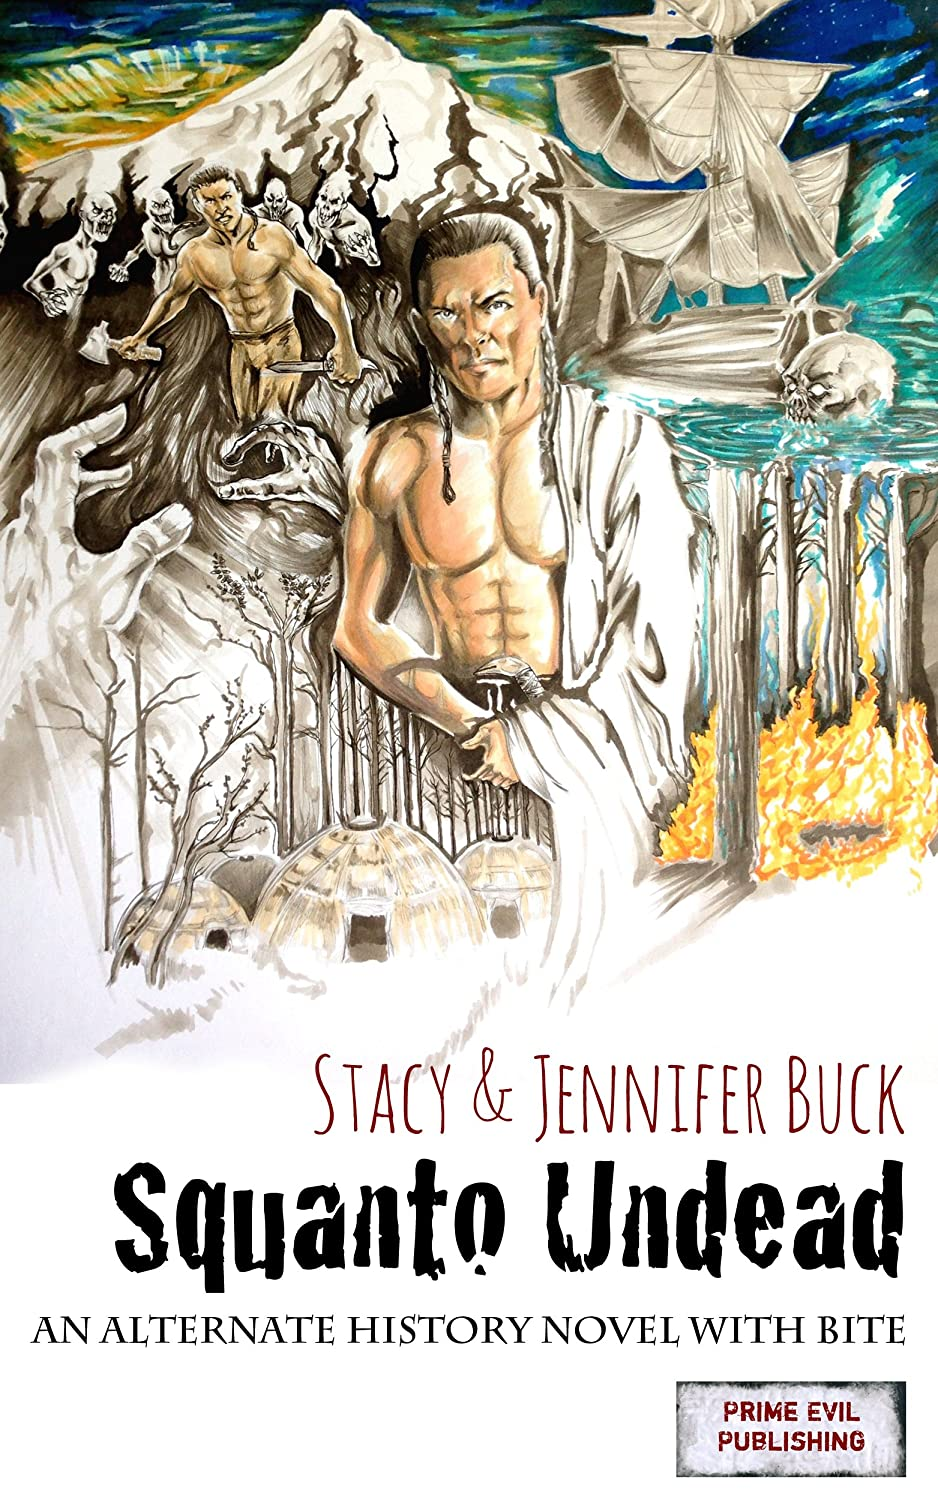 Squanto Undead: Wake the Undead Part 1 by Stacy Buck